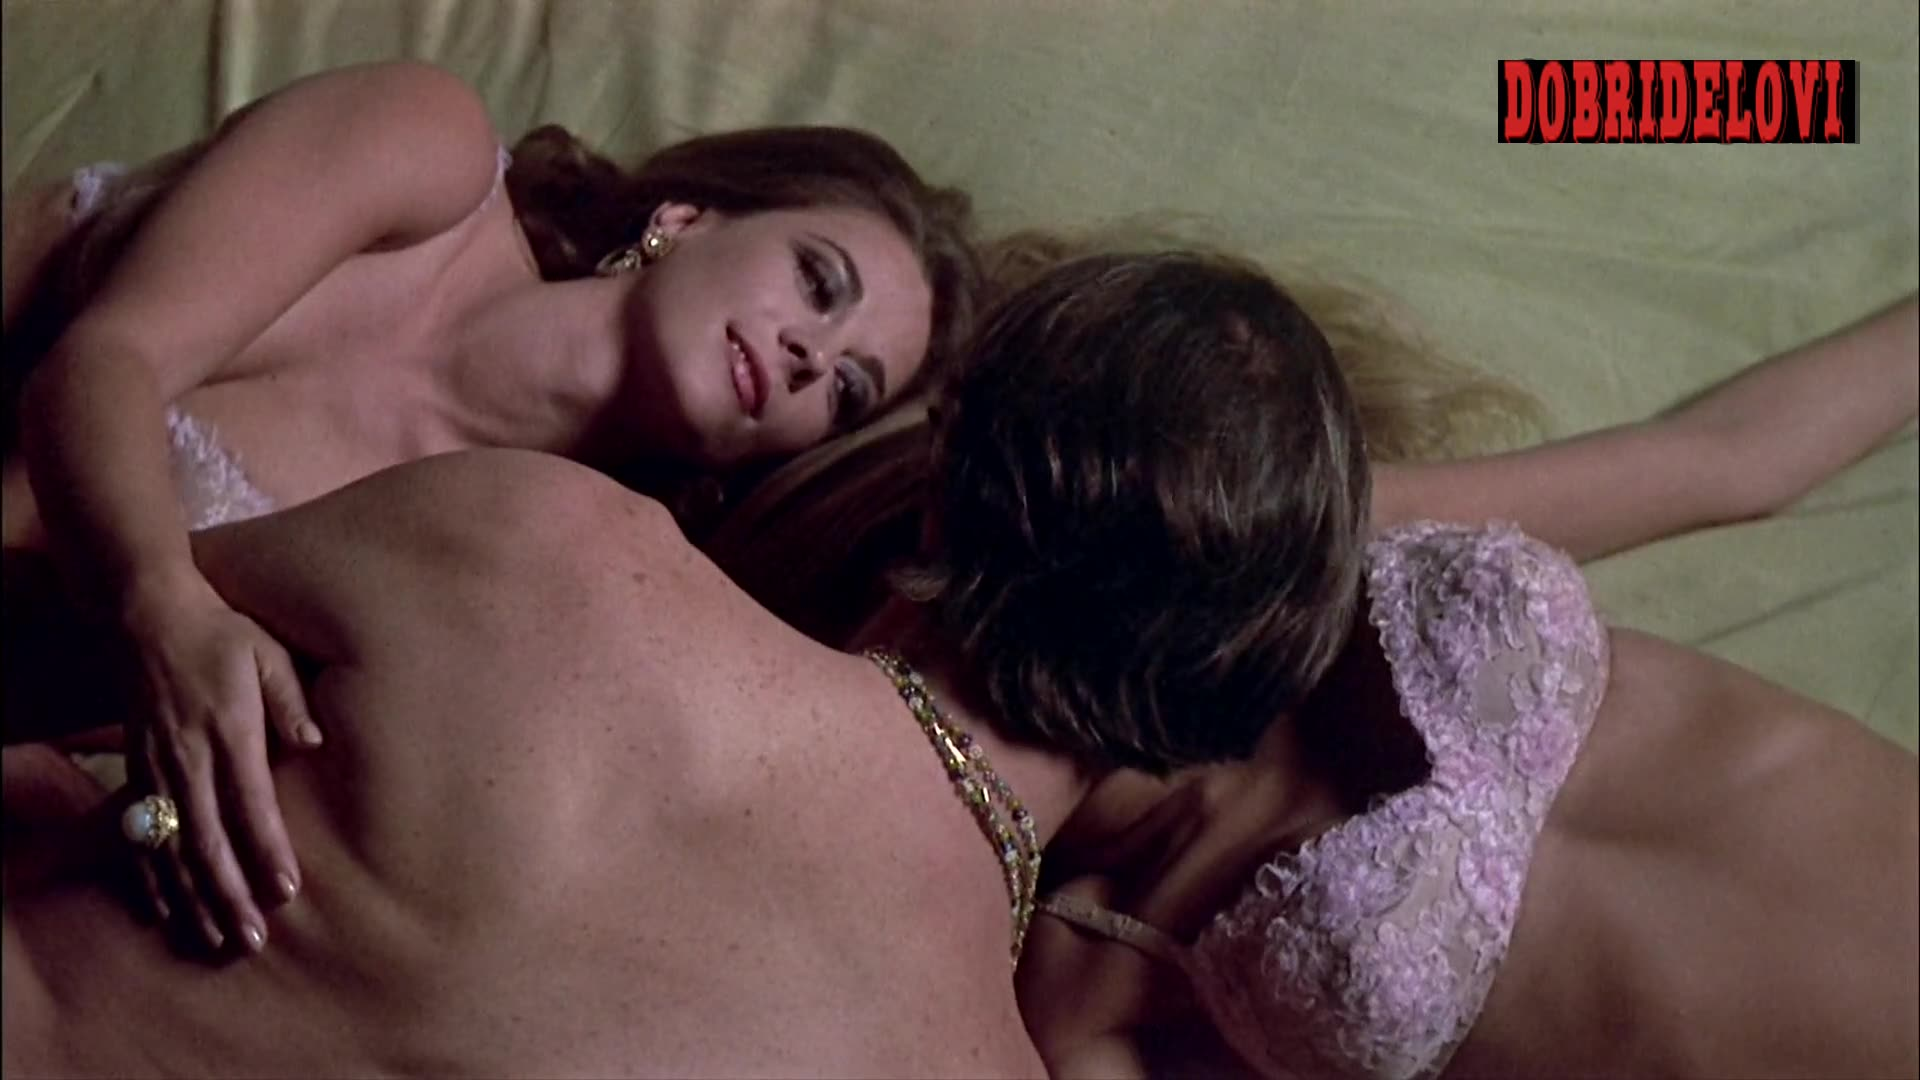 Watch Dyan Cannon and Natalie Wood threesome scene from Bob & Carol & Ted & Alice video